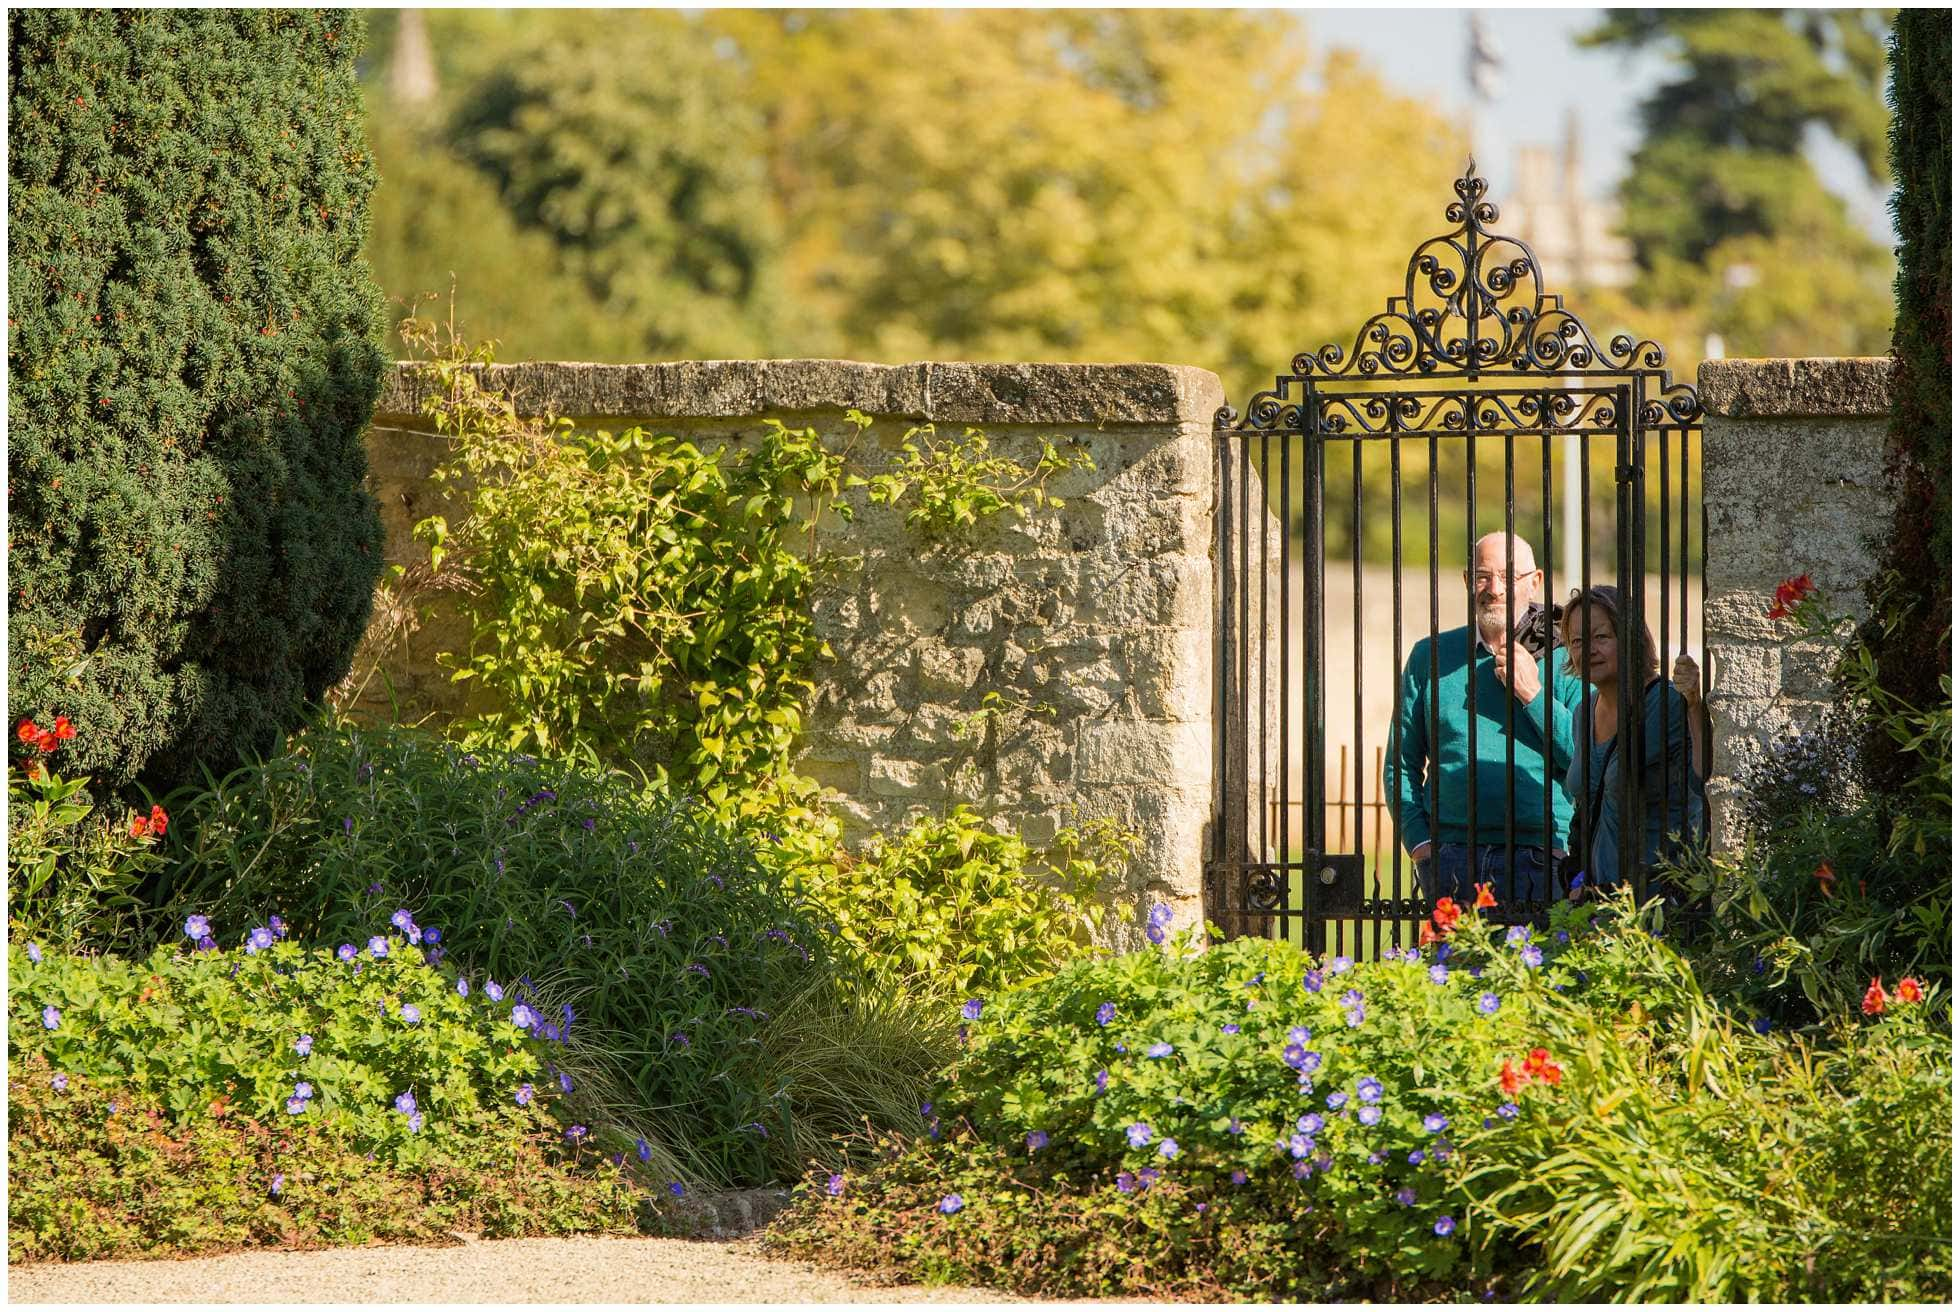 Tourists peeping into the Master's garden